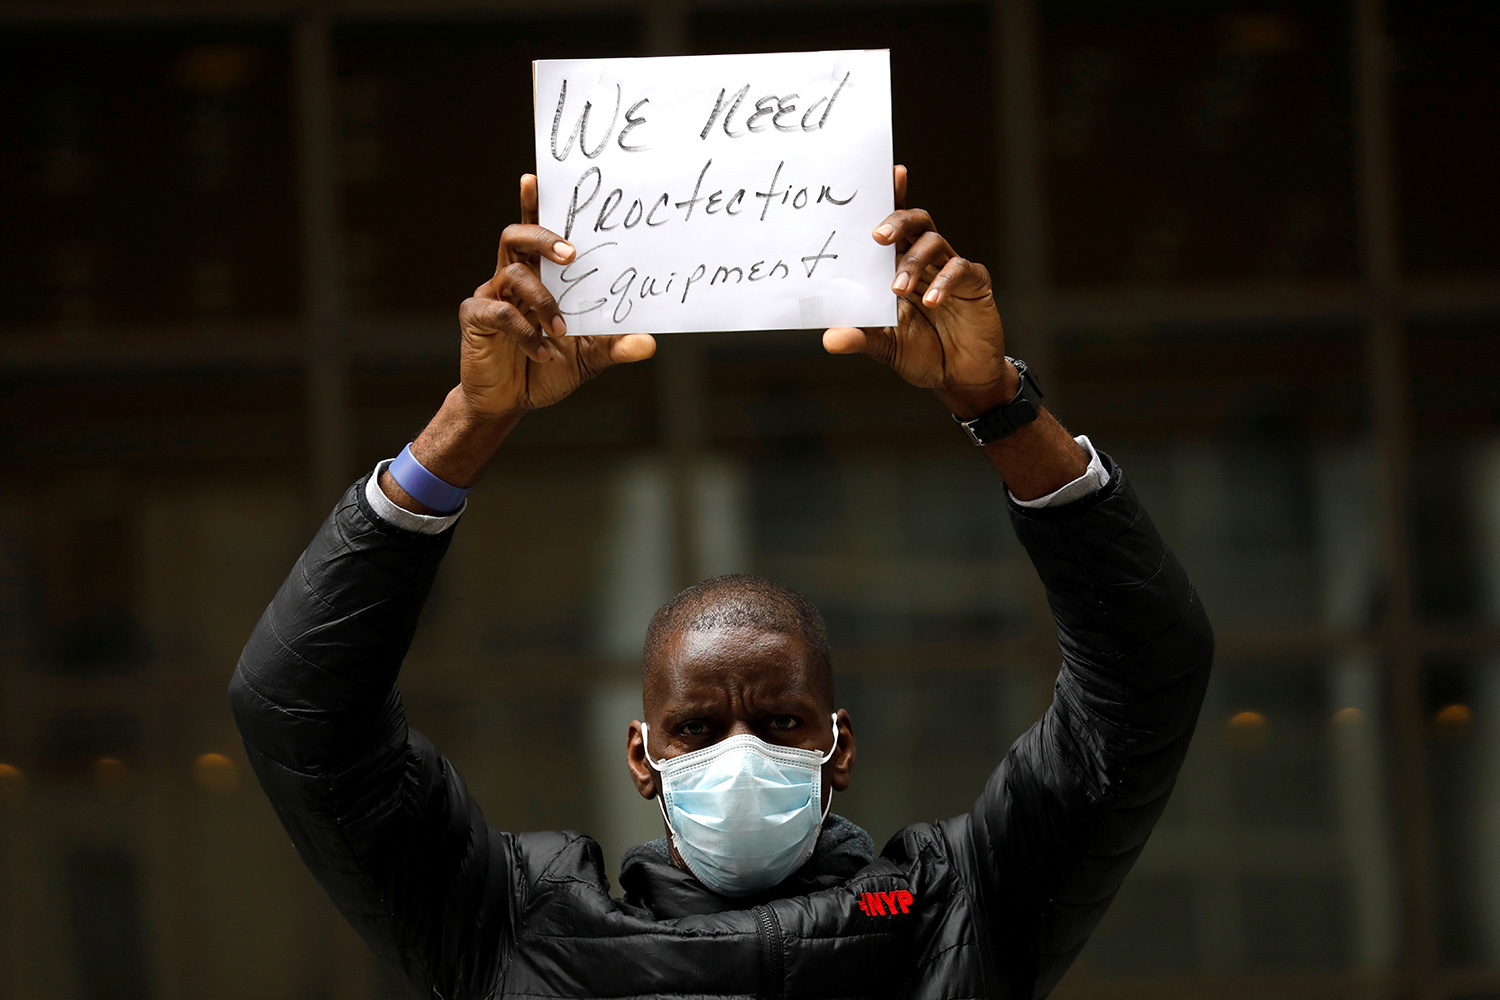 "A health worker in a demonstration calling on federal and local authorities to provide more Personal Protective Equipment outside New York-Presbyterian Medical Center in Manhattan on April 9, 2020. The image shows a man wearing a mask and holding a small sign above his head that says, ""We need protection equipment."" REUTERS/Mike Segar"